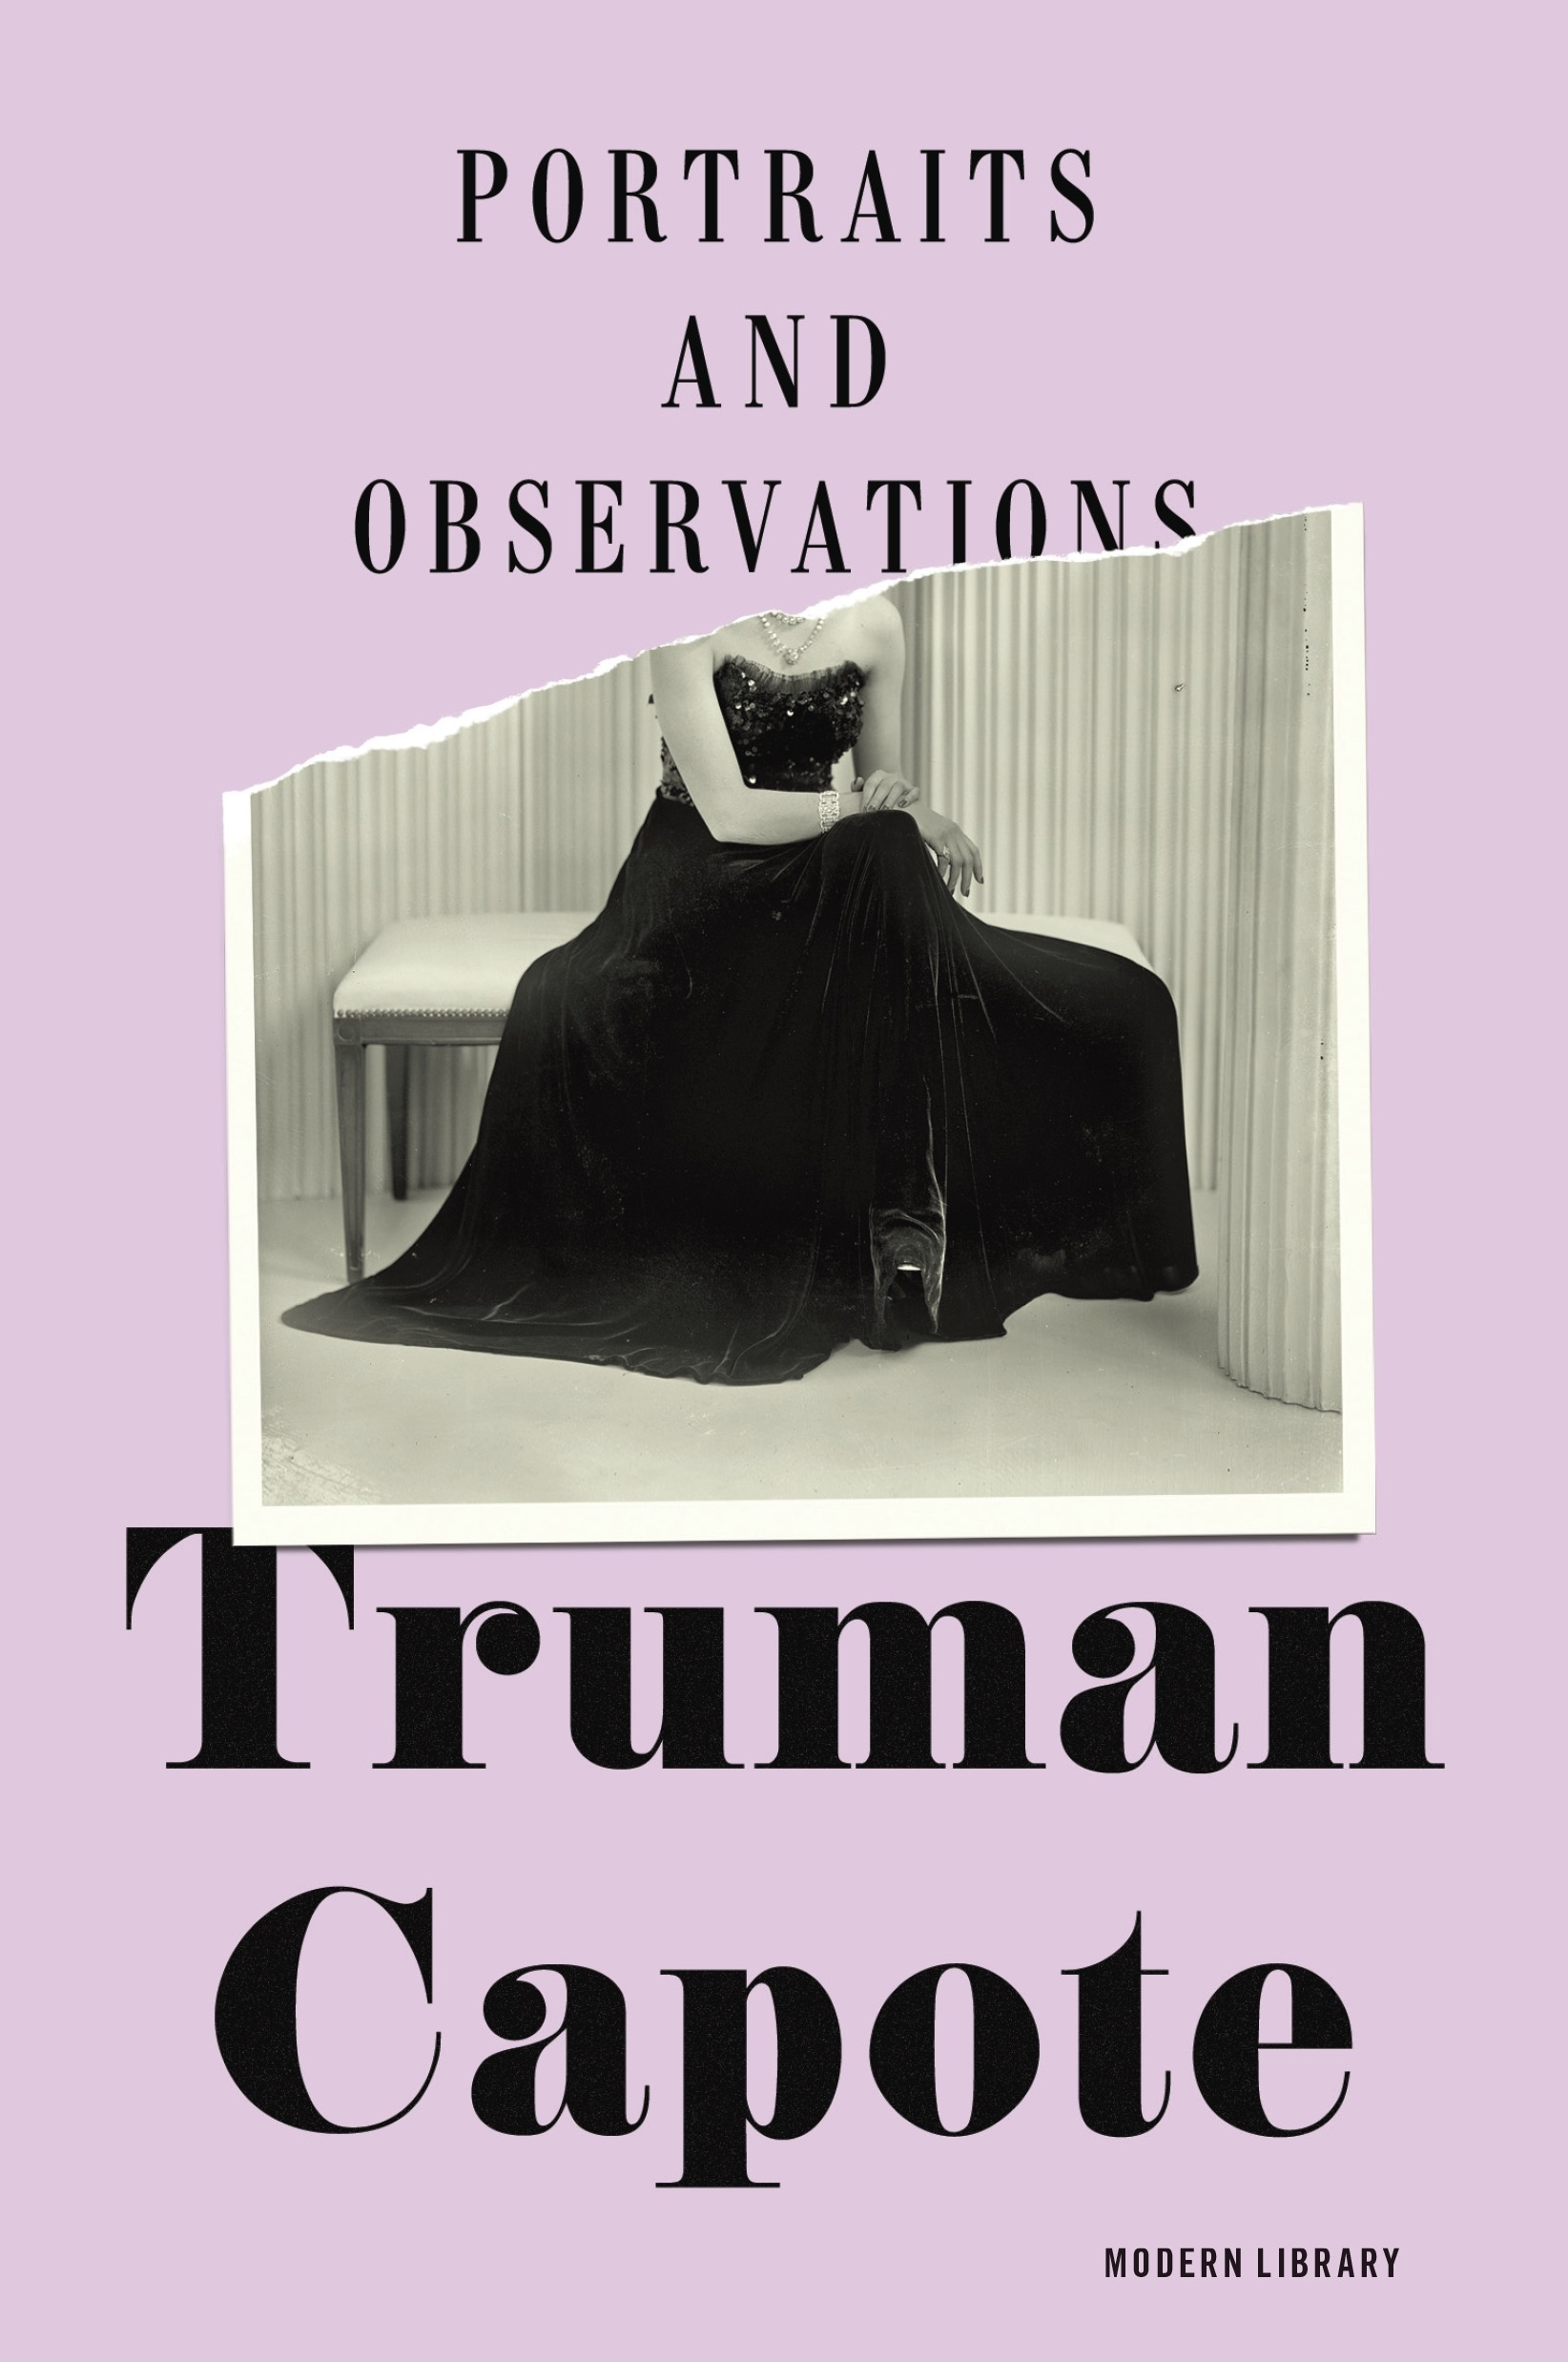 truman capote critical essays The truman capote award for literary criticism is awarded for literary criticism  by the university of iowa on behalf of the truman capote literary trust.